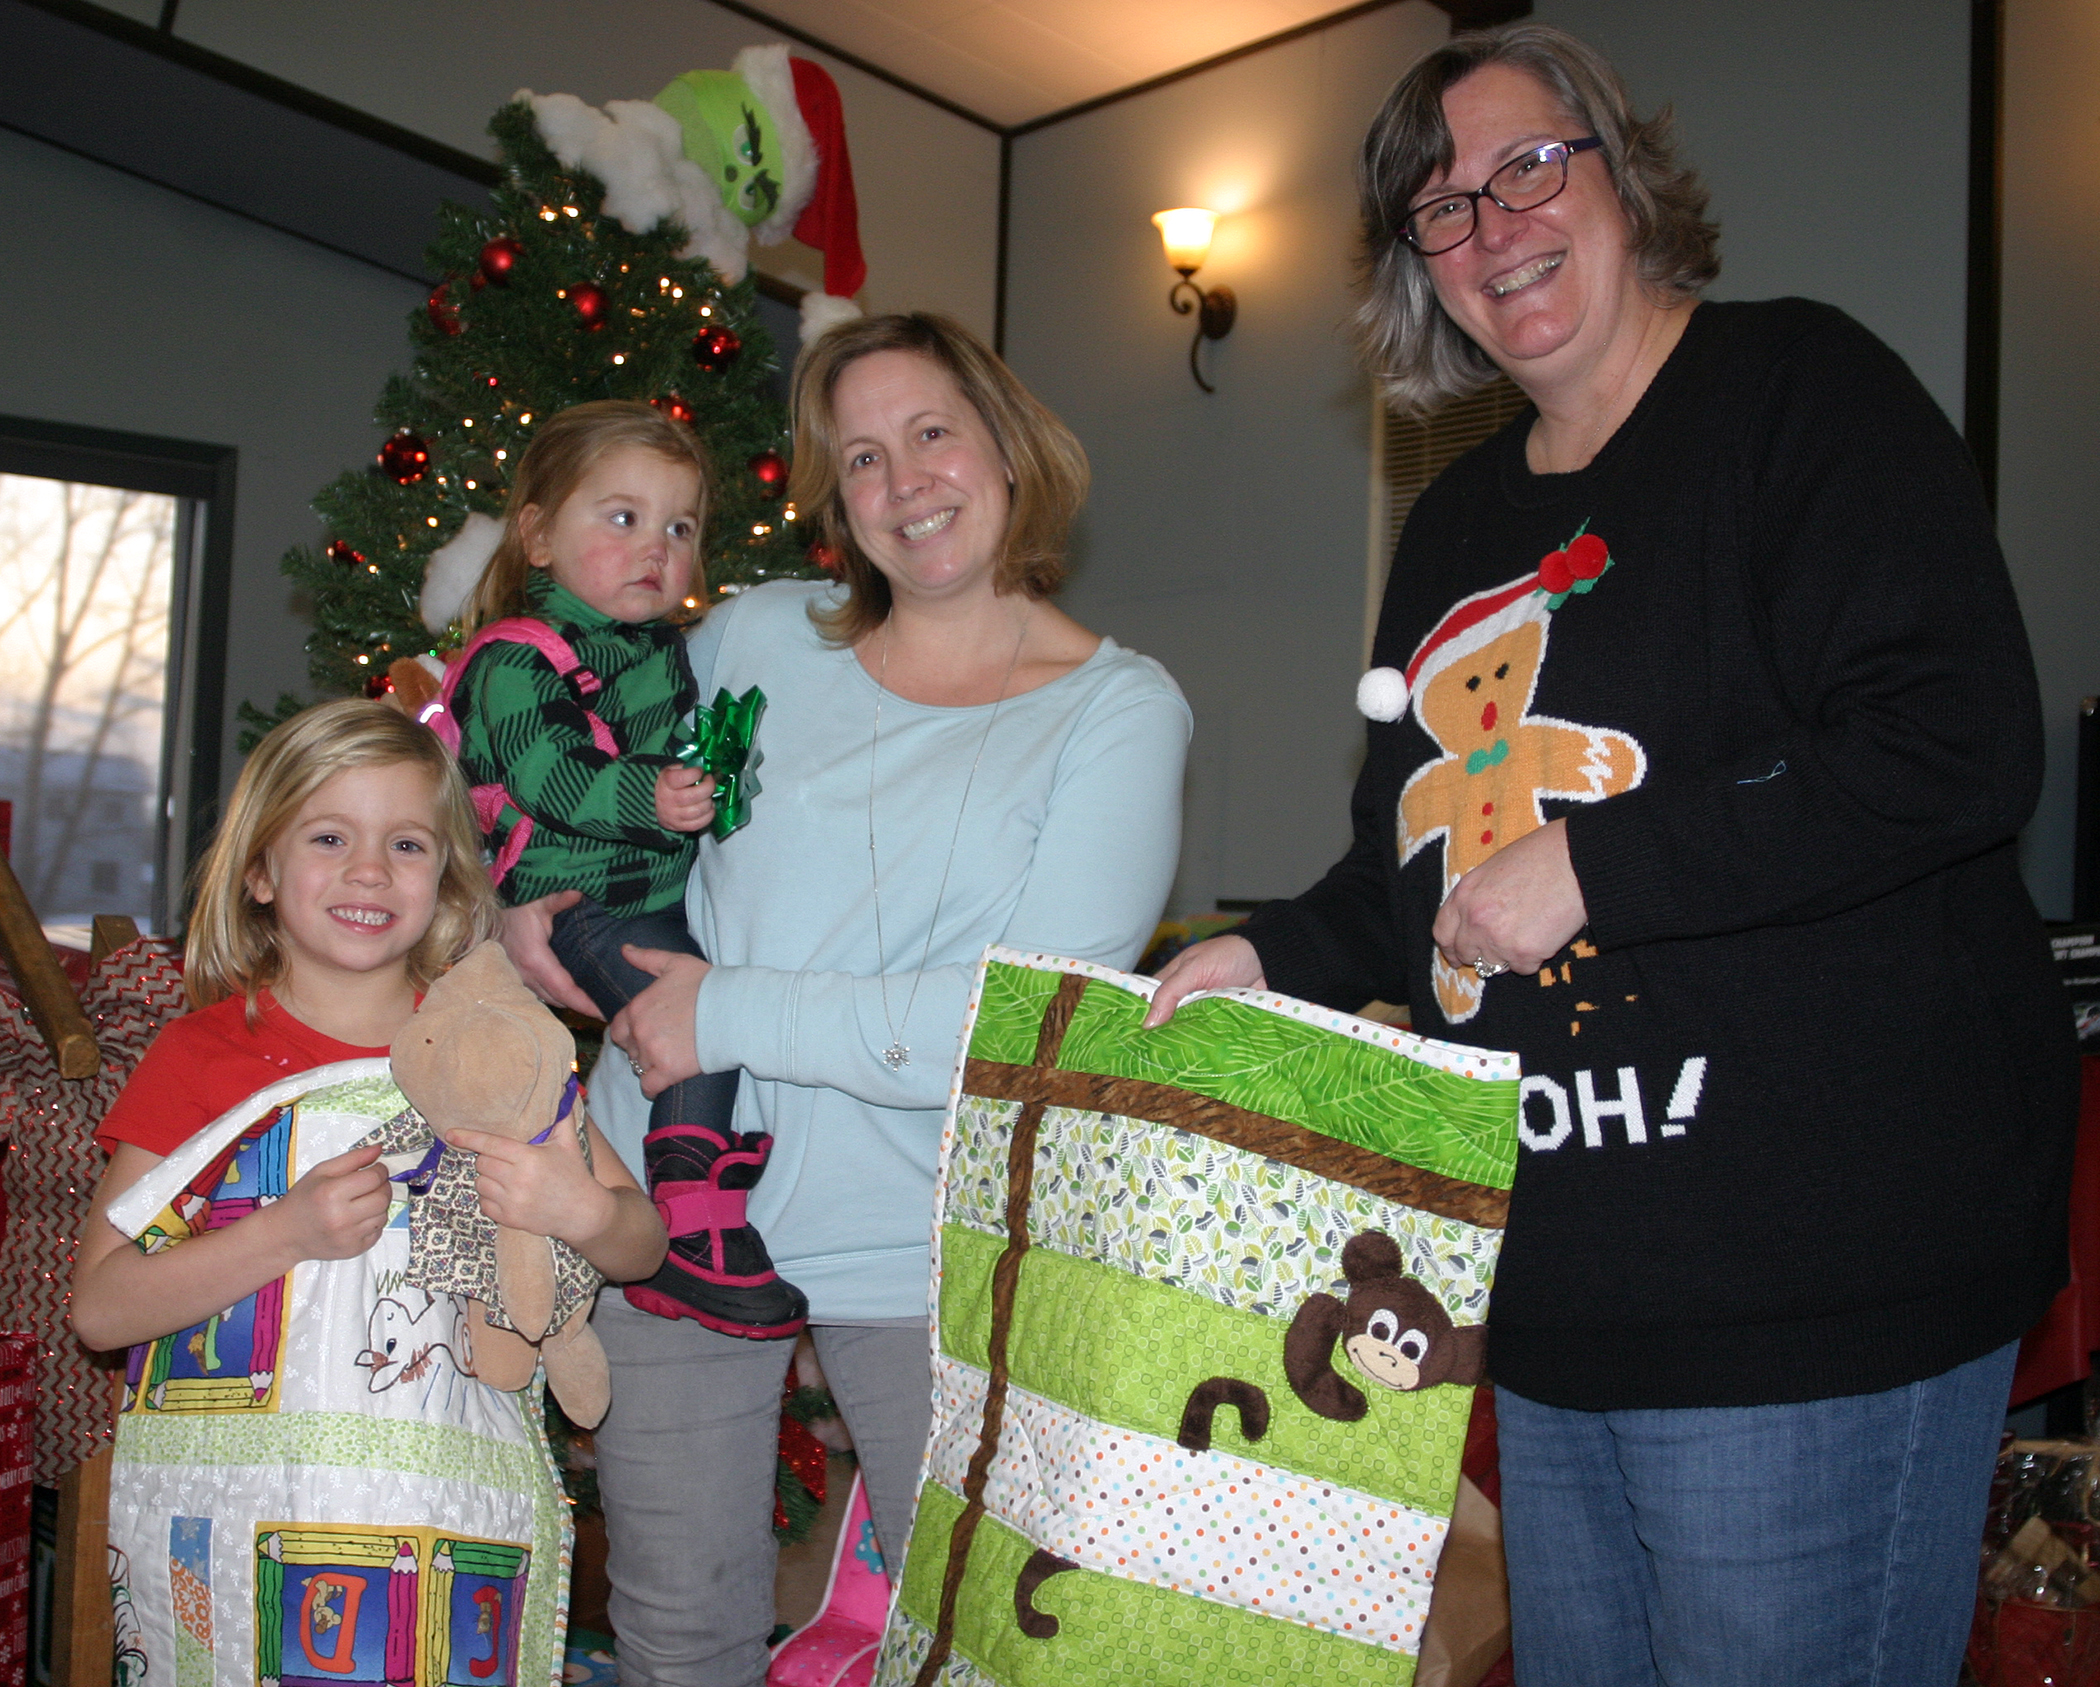 Each child at the party received a handmade quilt as part of their gift bag. From left are Brynn, 5, Jovie, 1, and Rhonda Convery with Kanata Quilt Guild President Brigid Whitnall. Photo by Jake Davies